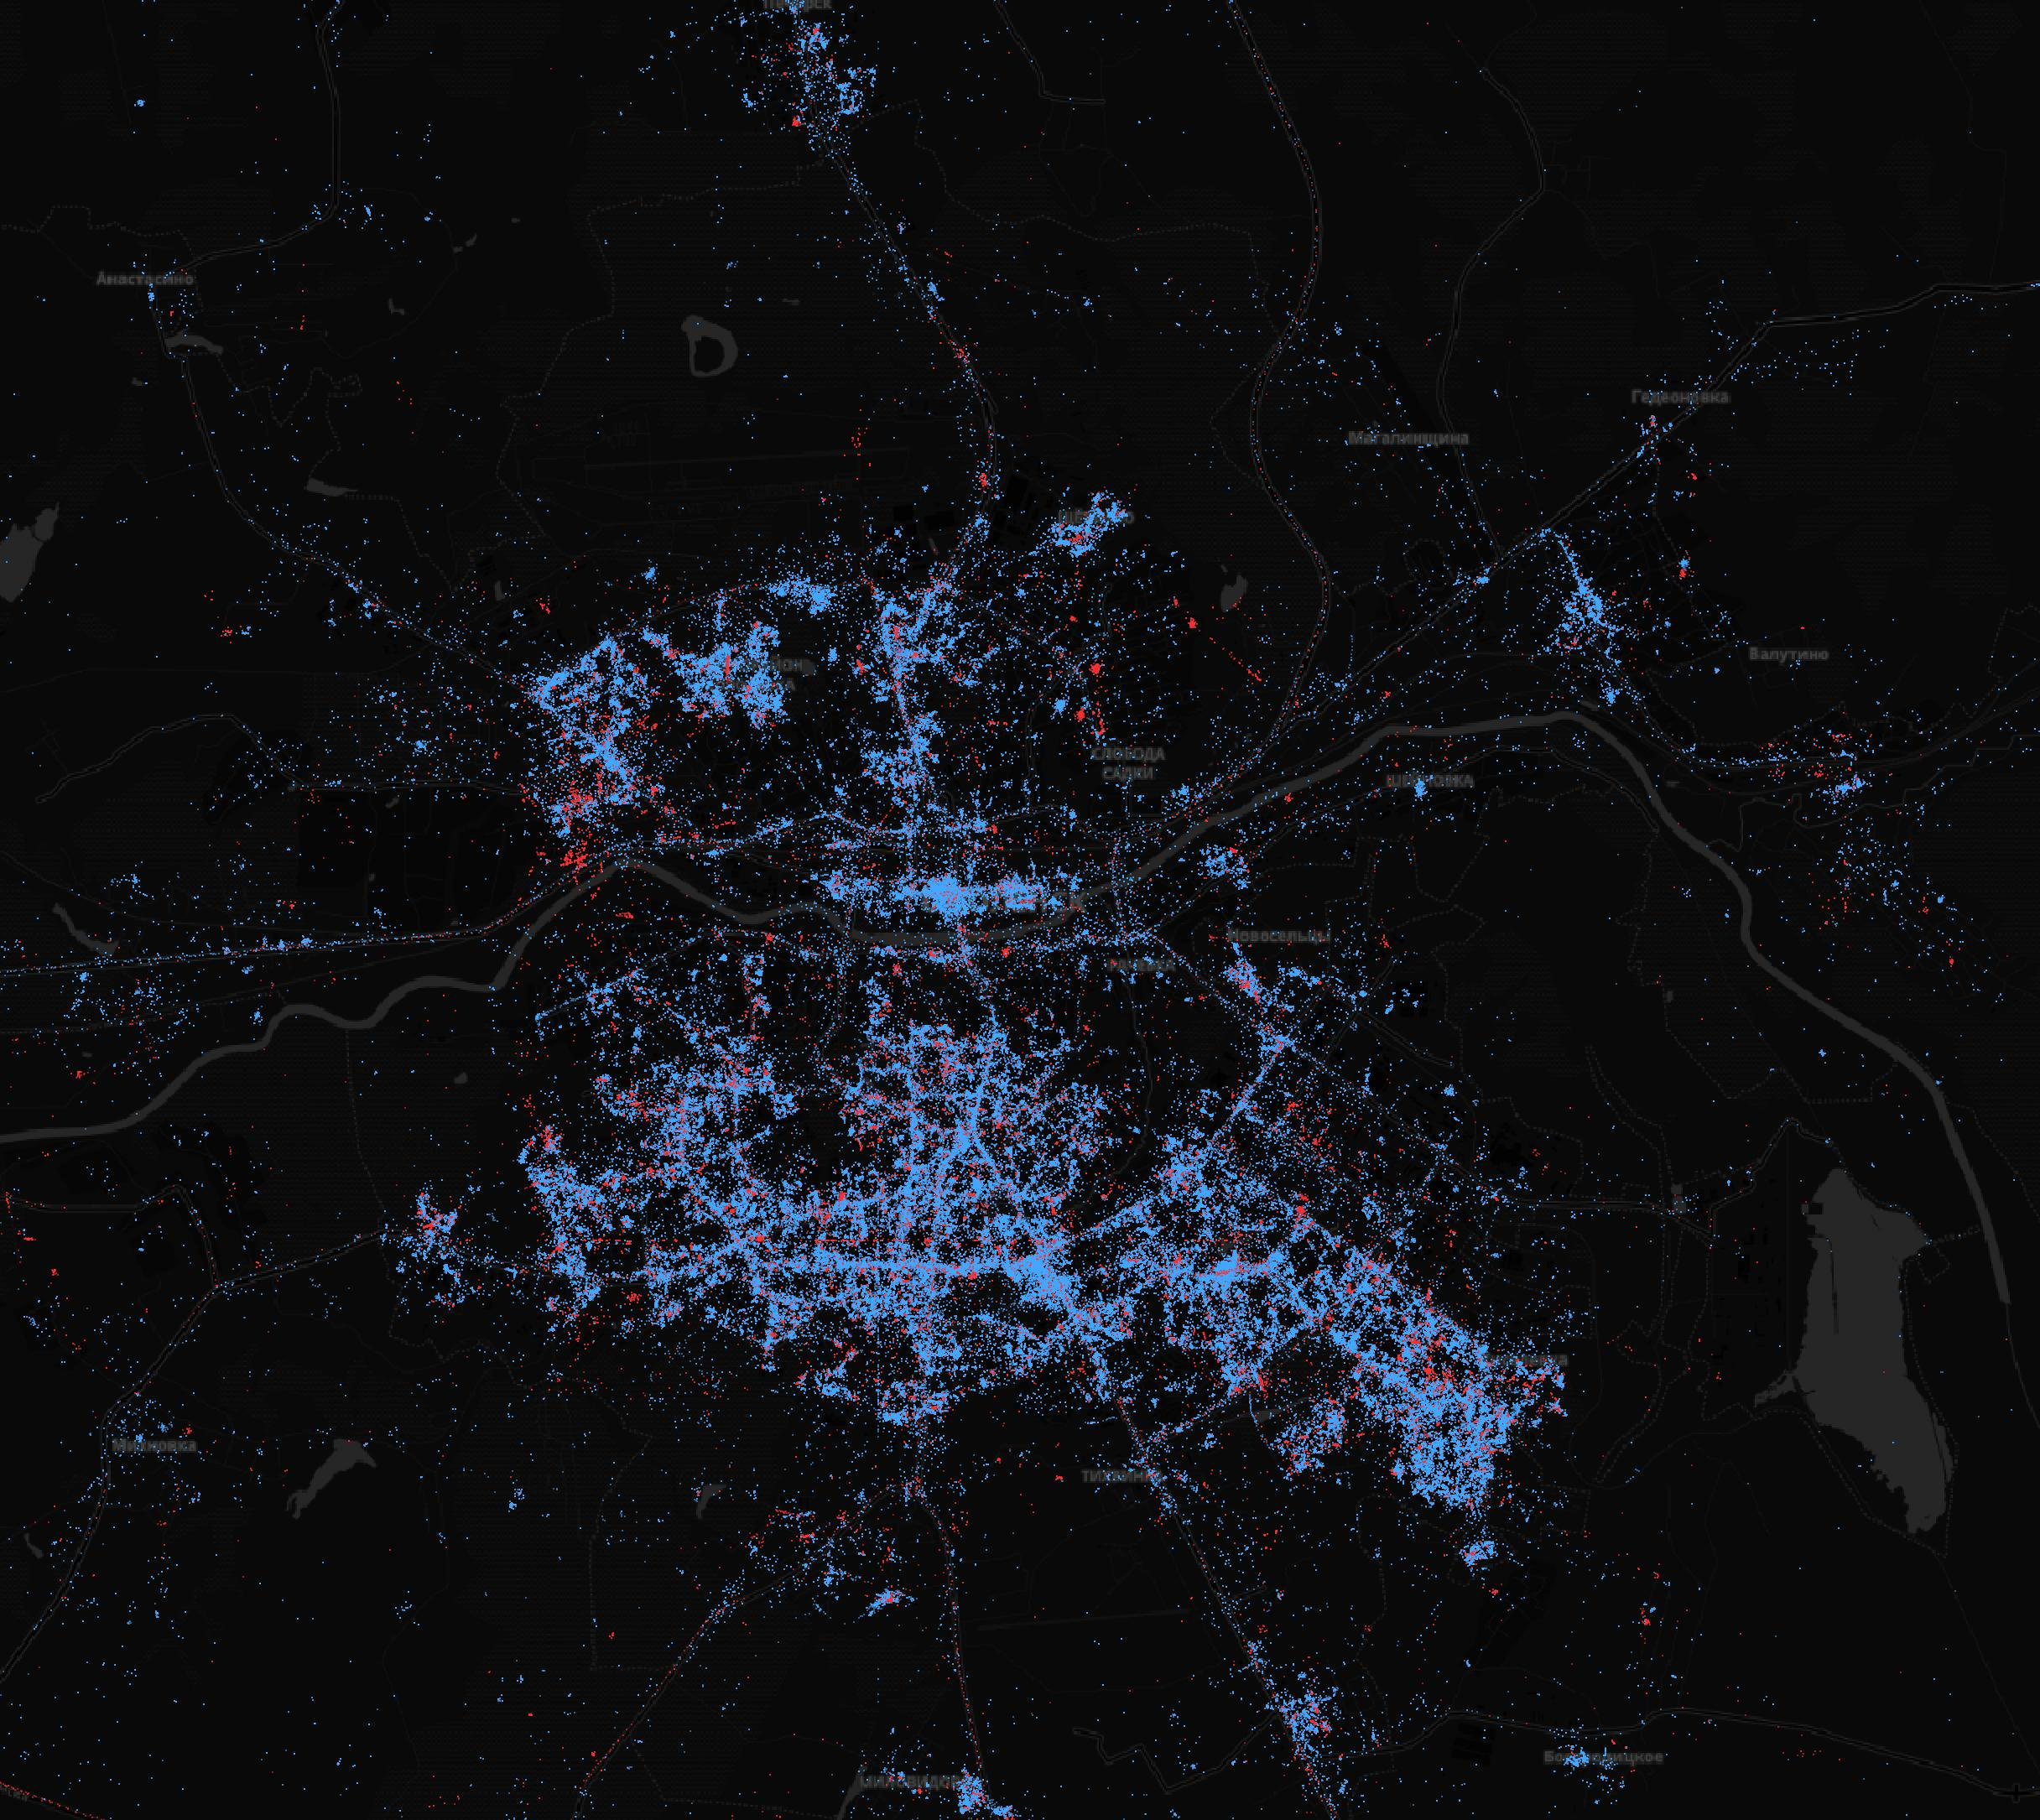 In Moscow - iPhones, in St. Petersburg - Android. What are the maps of Android and iOS users in Russia | Kanobu - Image 8